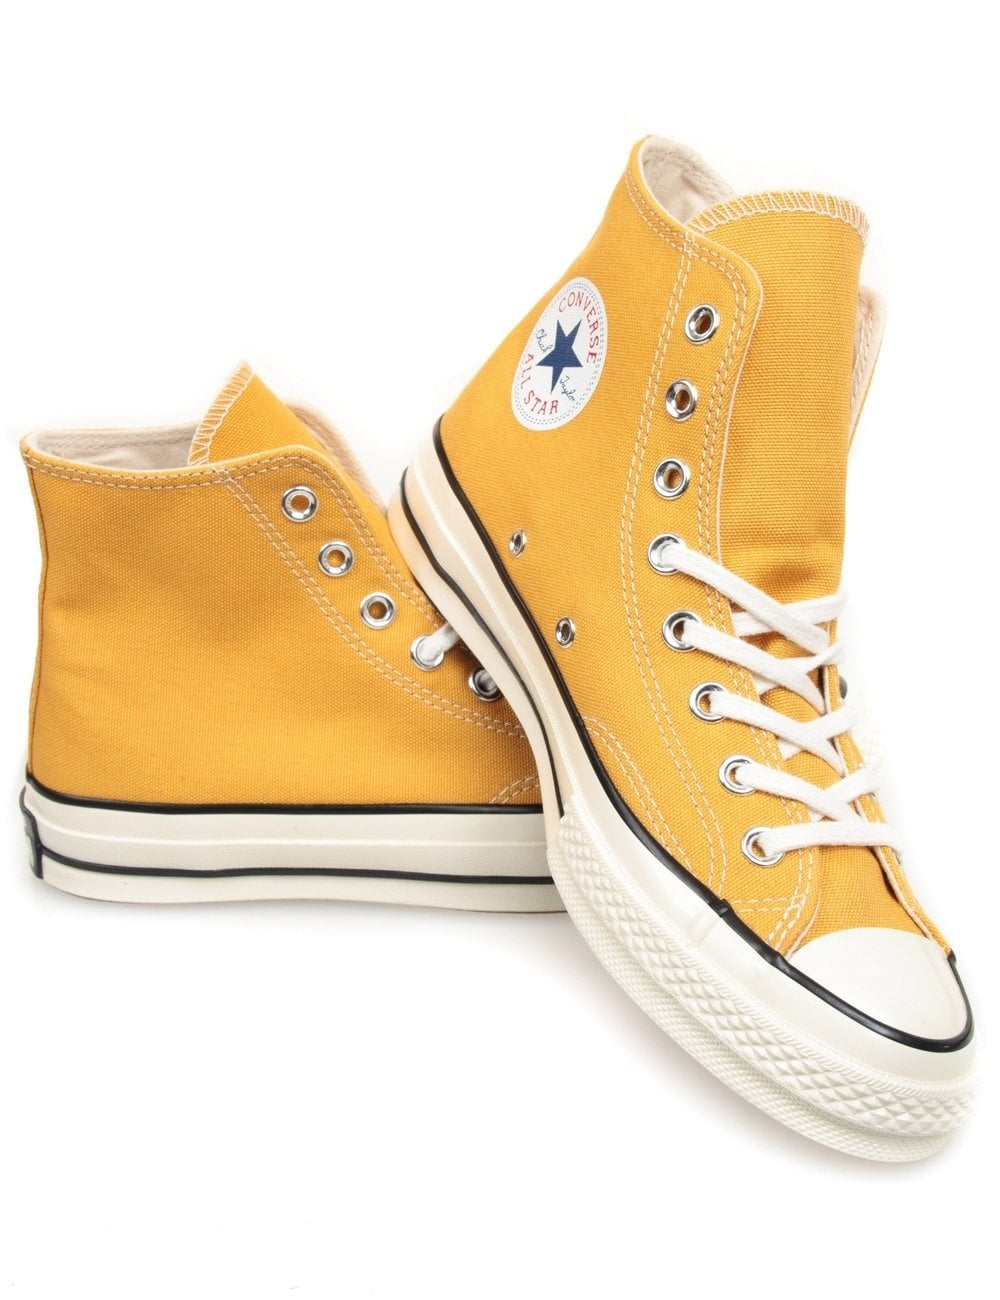 converse 70s sunflower